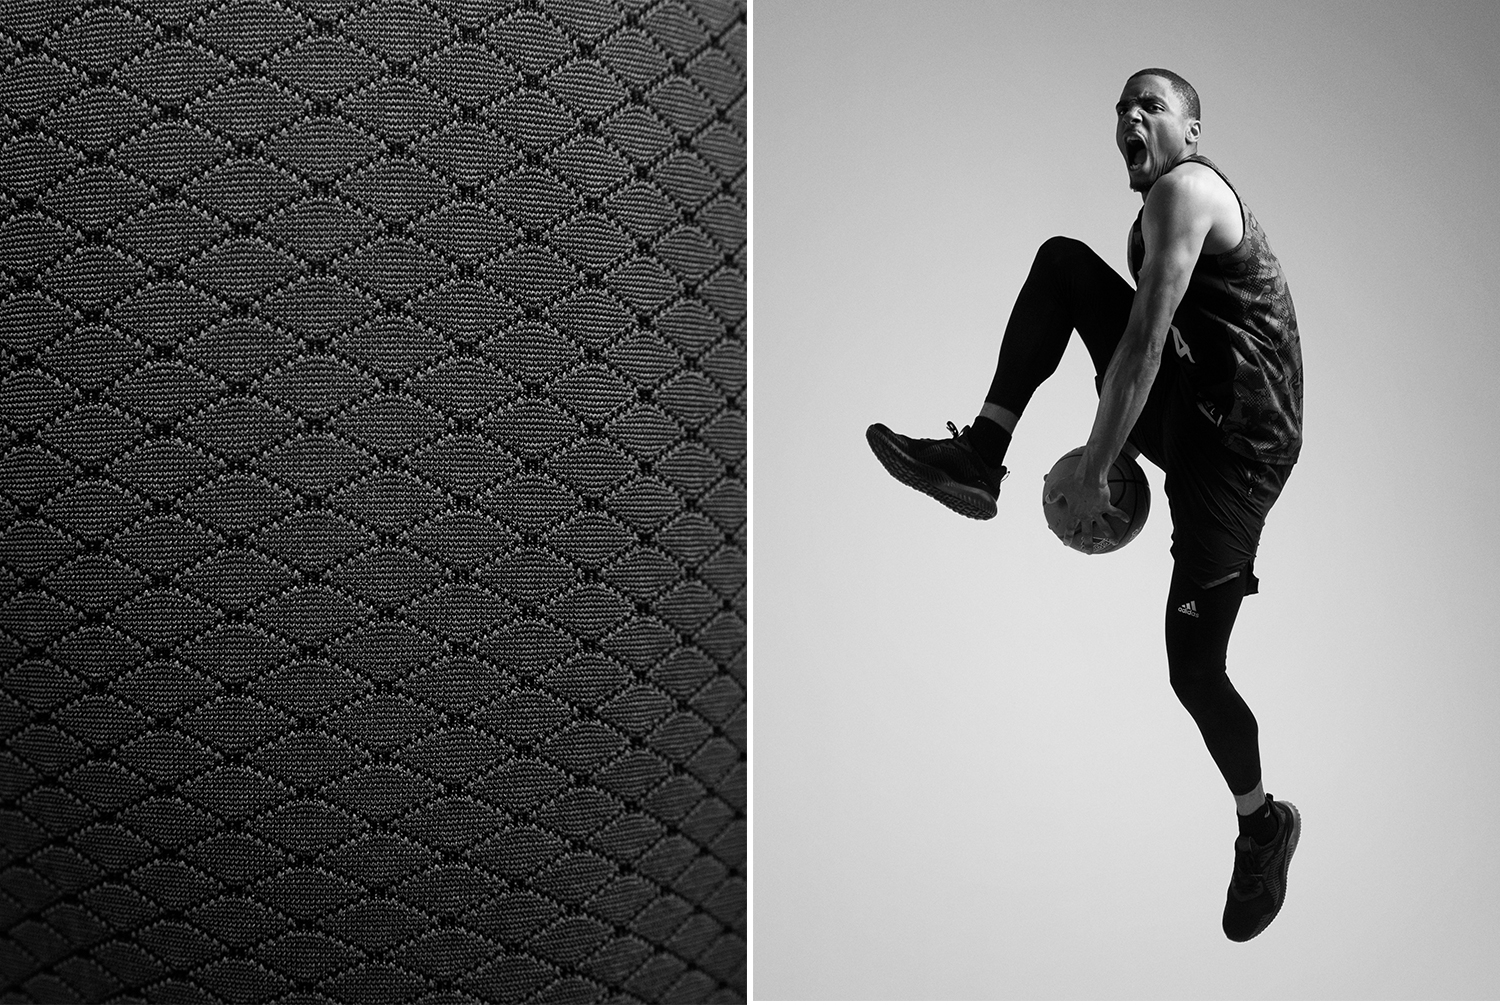 An action shot and a detail shot of a Veniceball League player with in an Adidas outfit photographed by Maximilian Baier